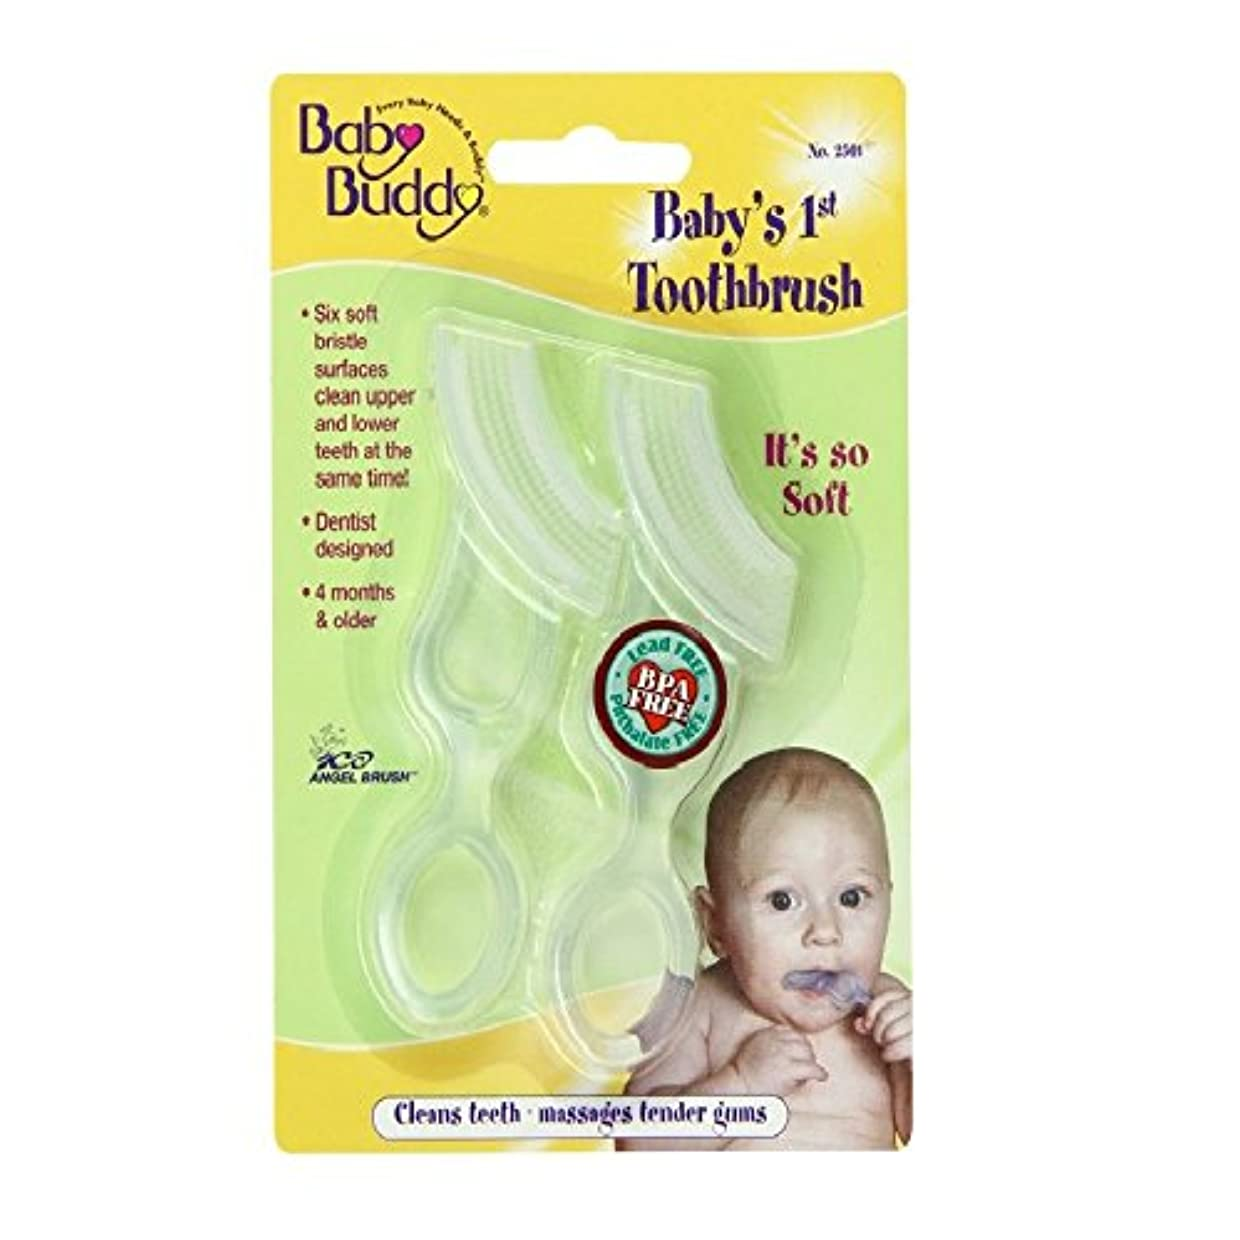 観察デジタルフェンスBaby Buddy Baby's 1st Toothbrush 2ct (Clear)